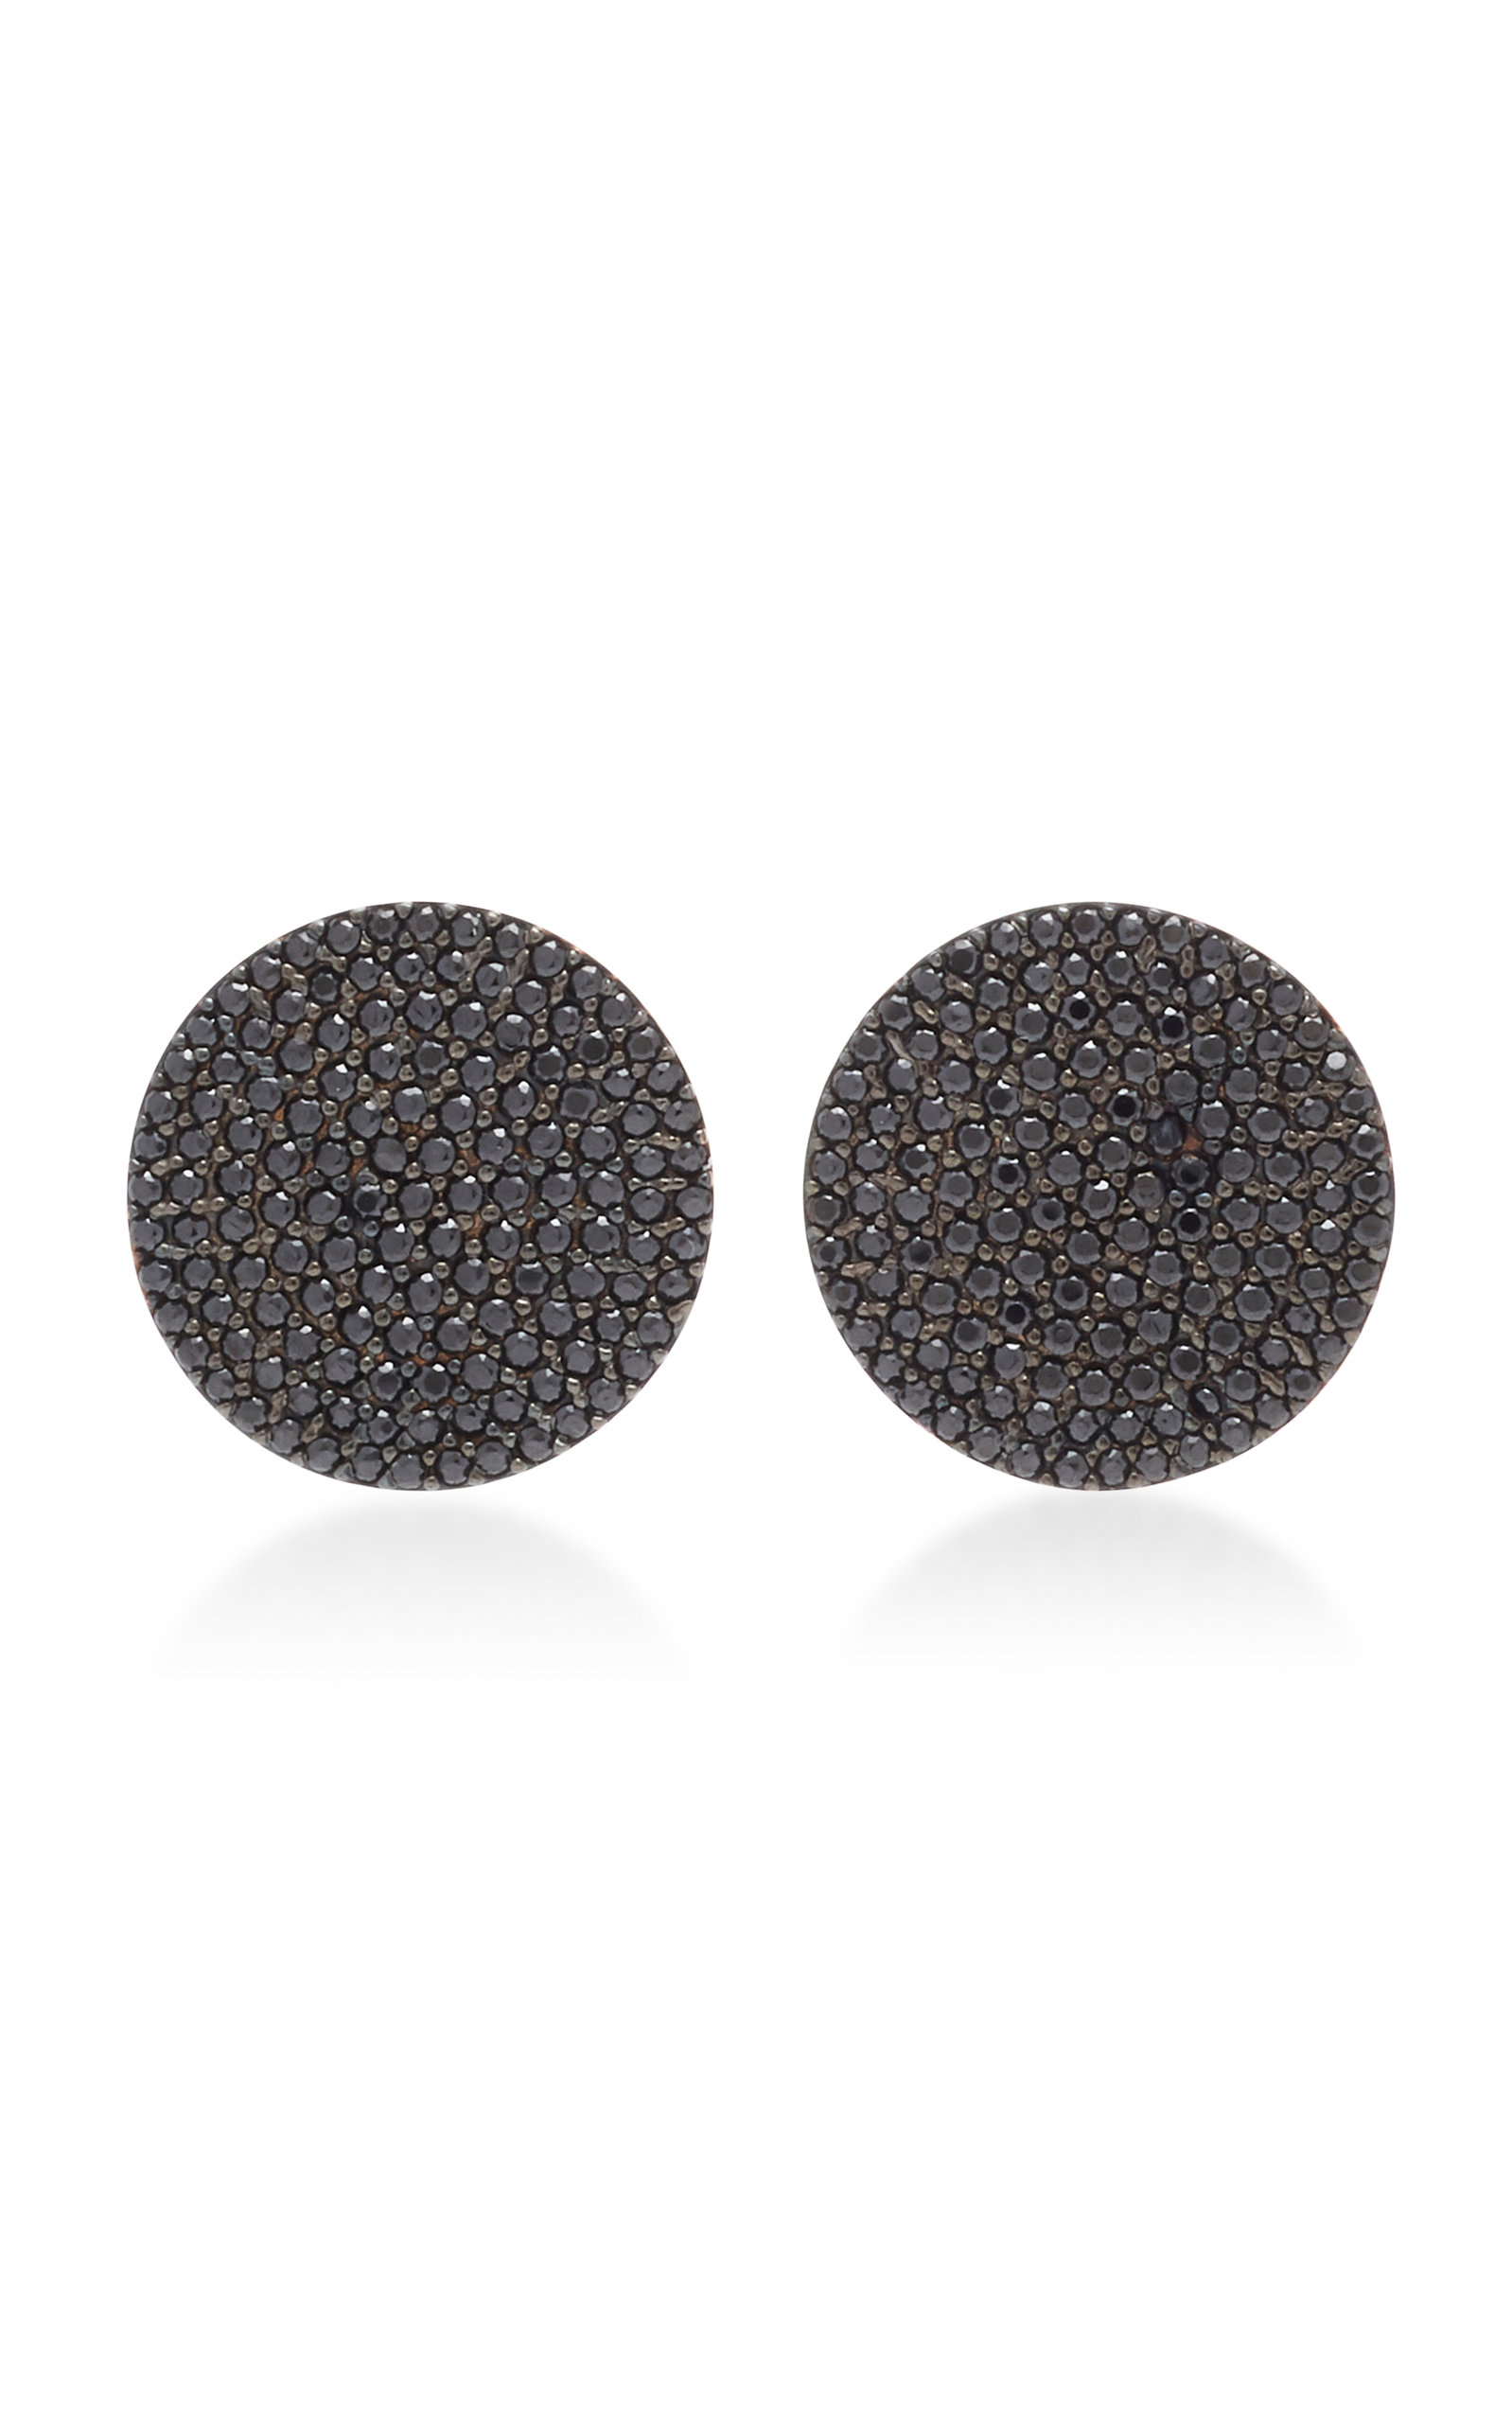 NICKHO REY BUTTON 14K GOLD AND BLACK SPINEL EARRINGS